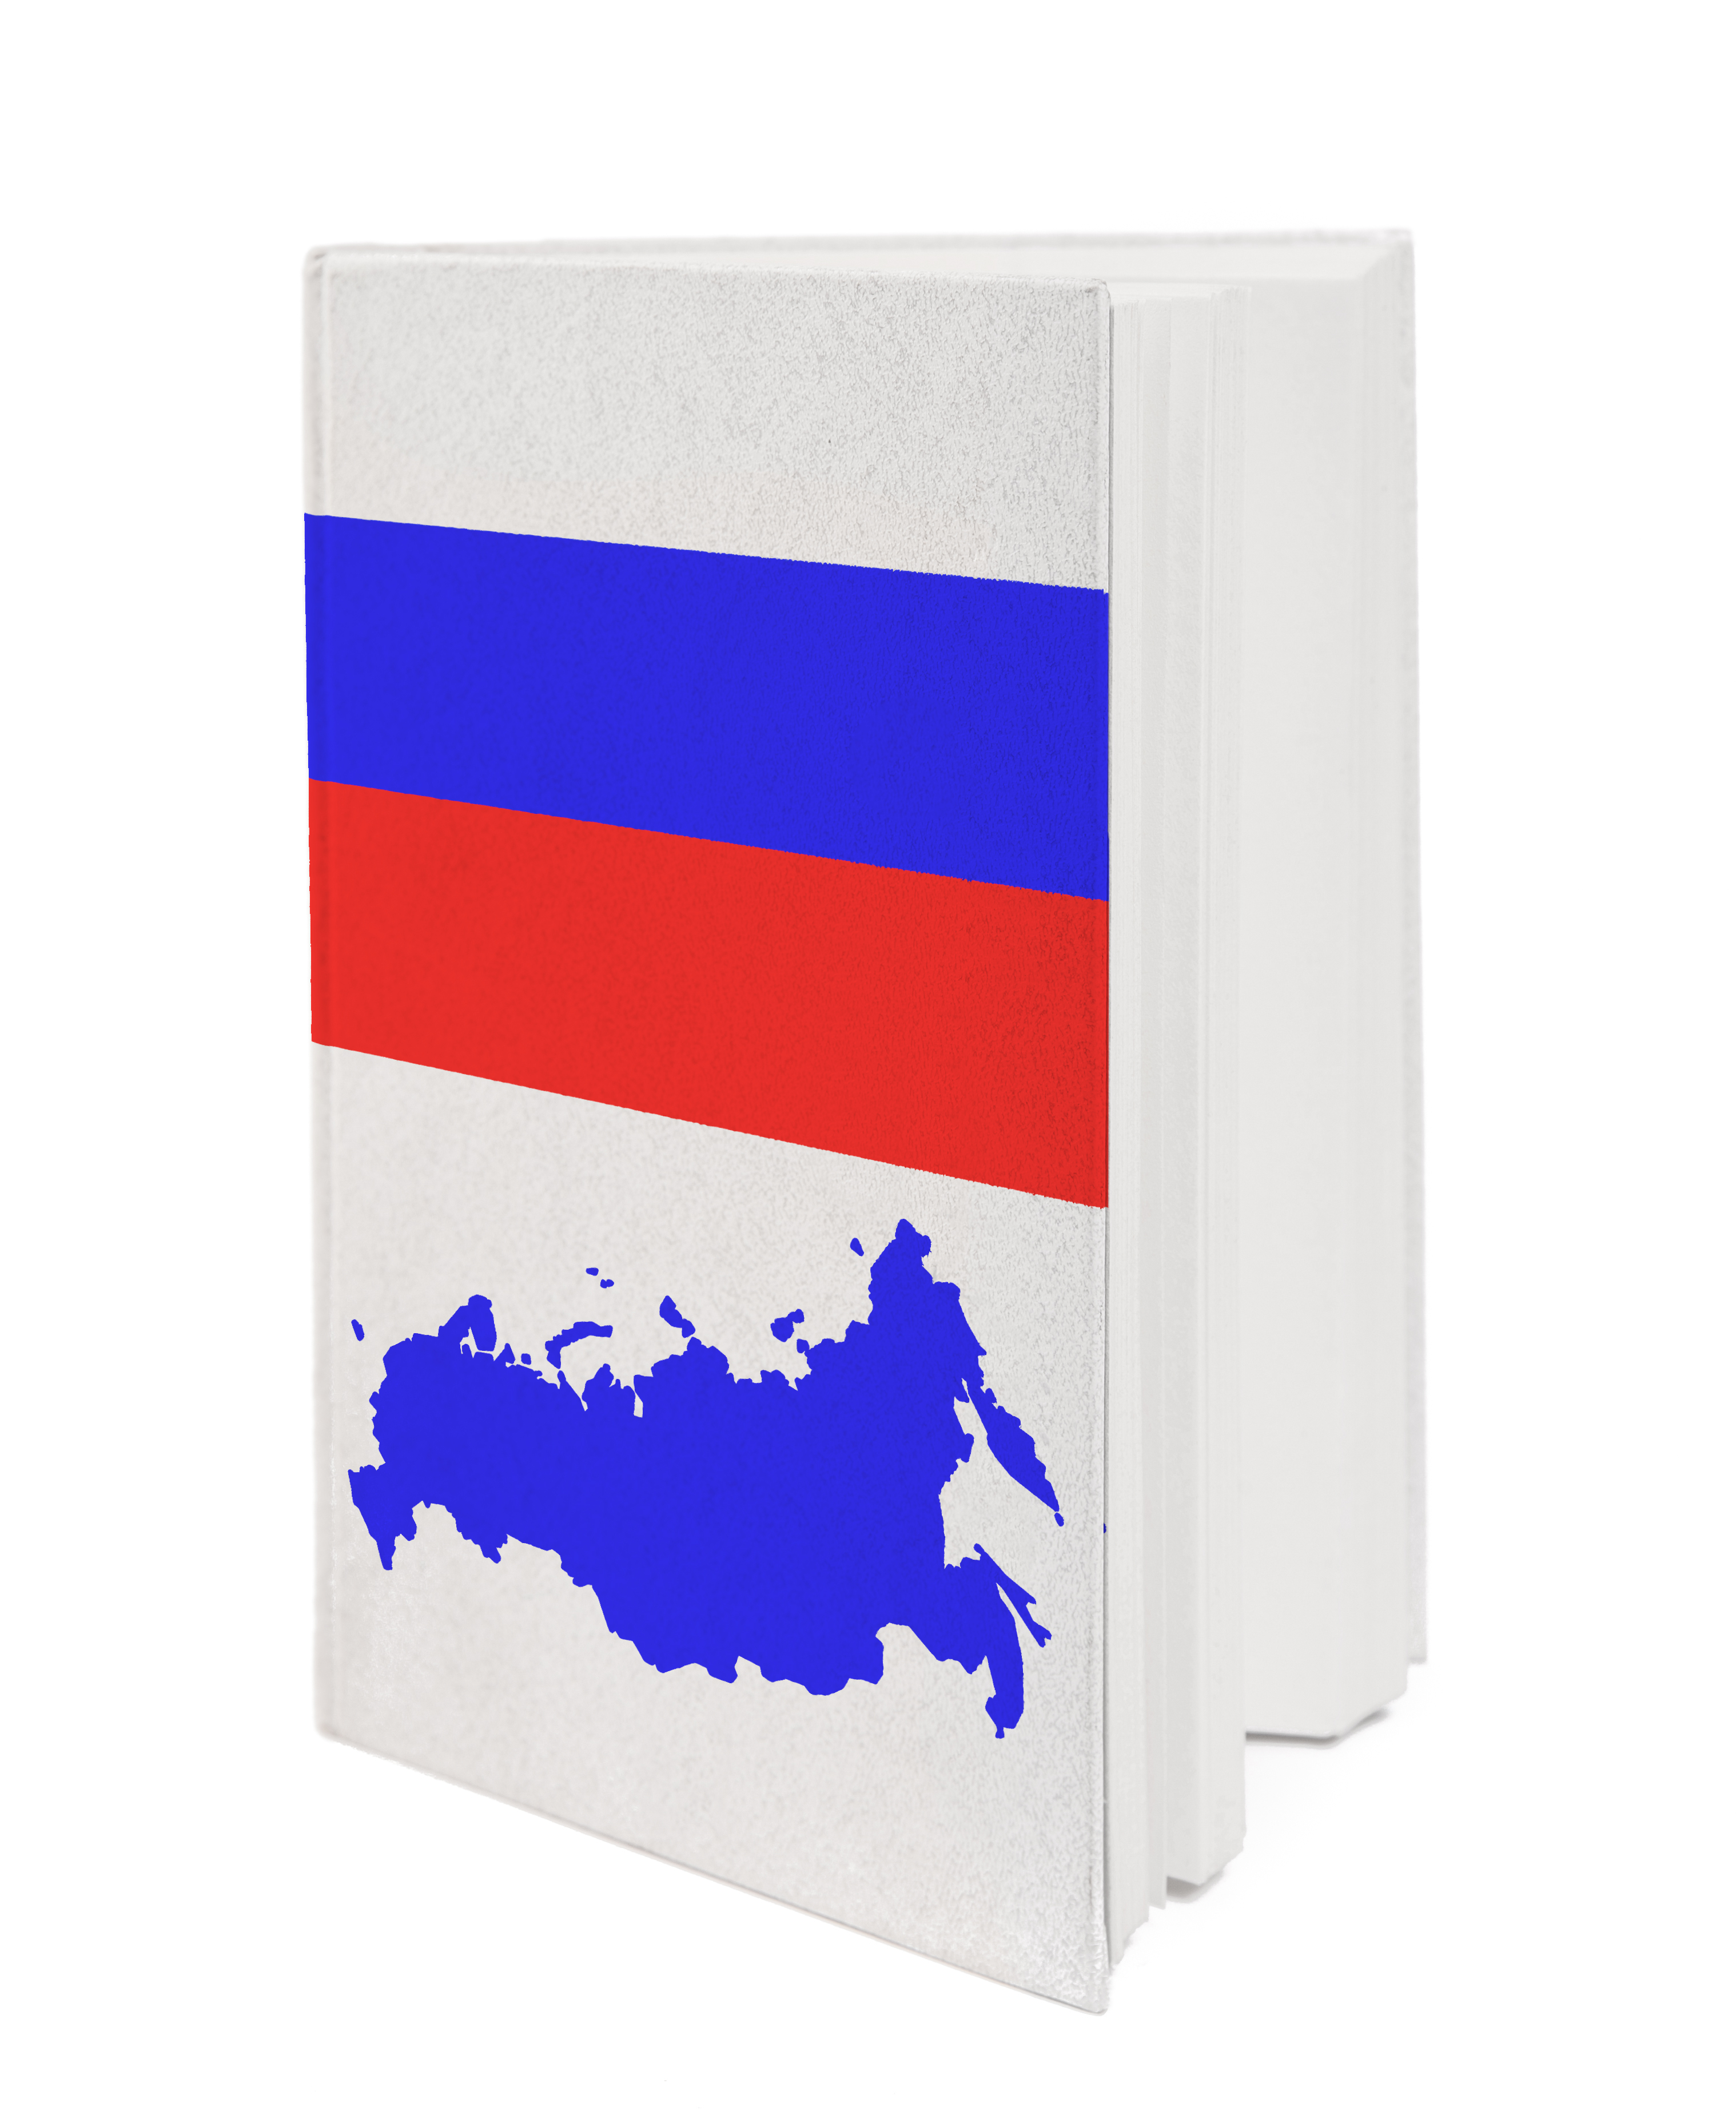 Book with the national flag and contour of Russia on cover.